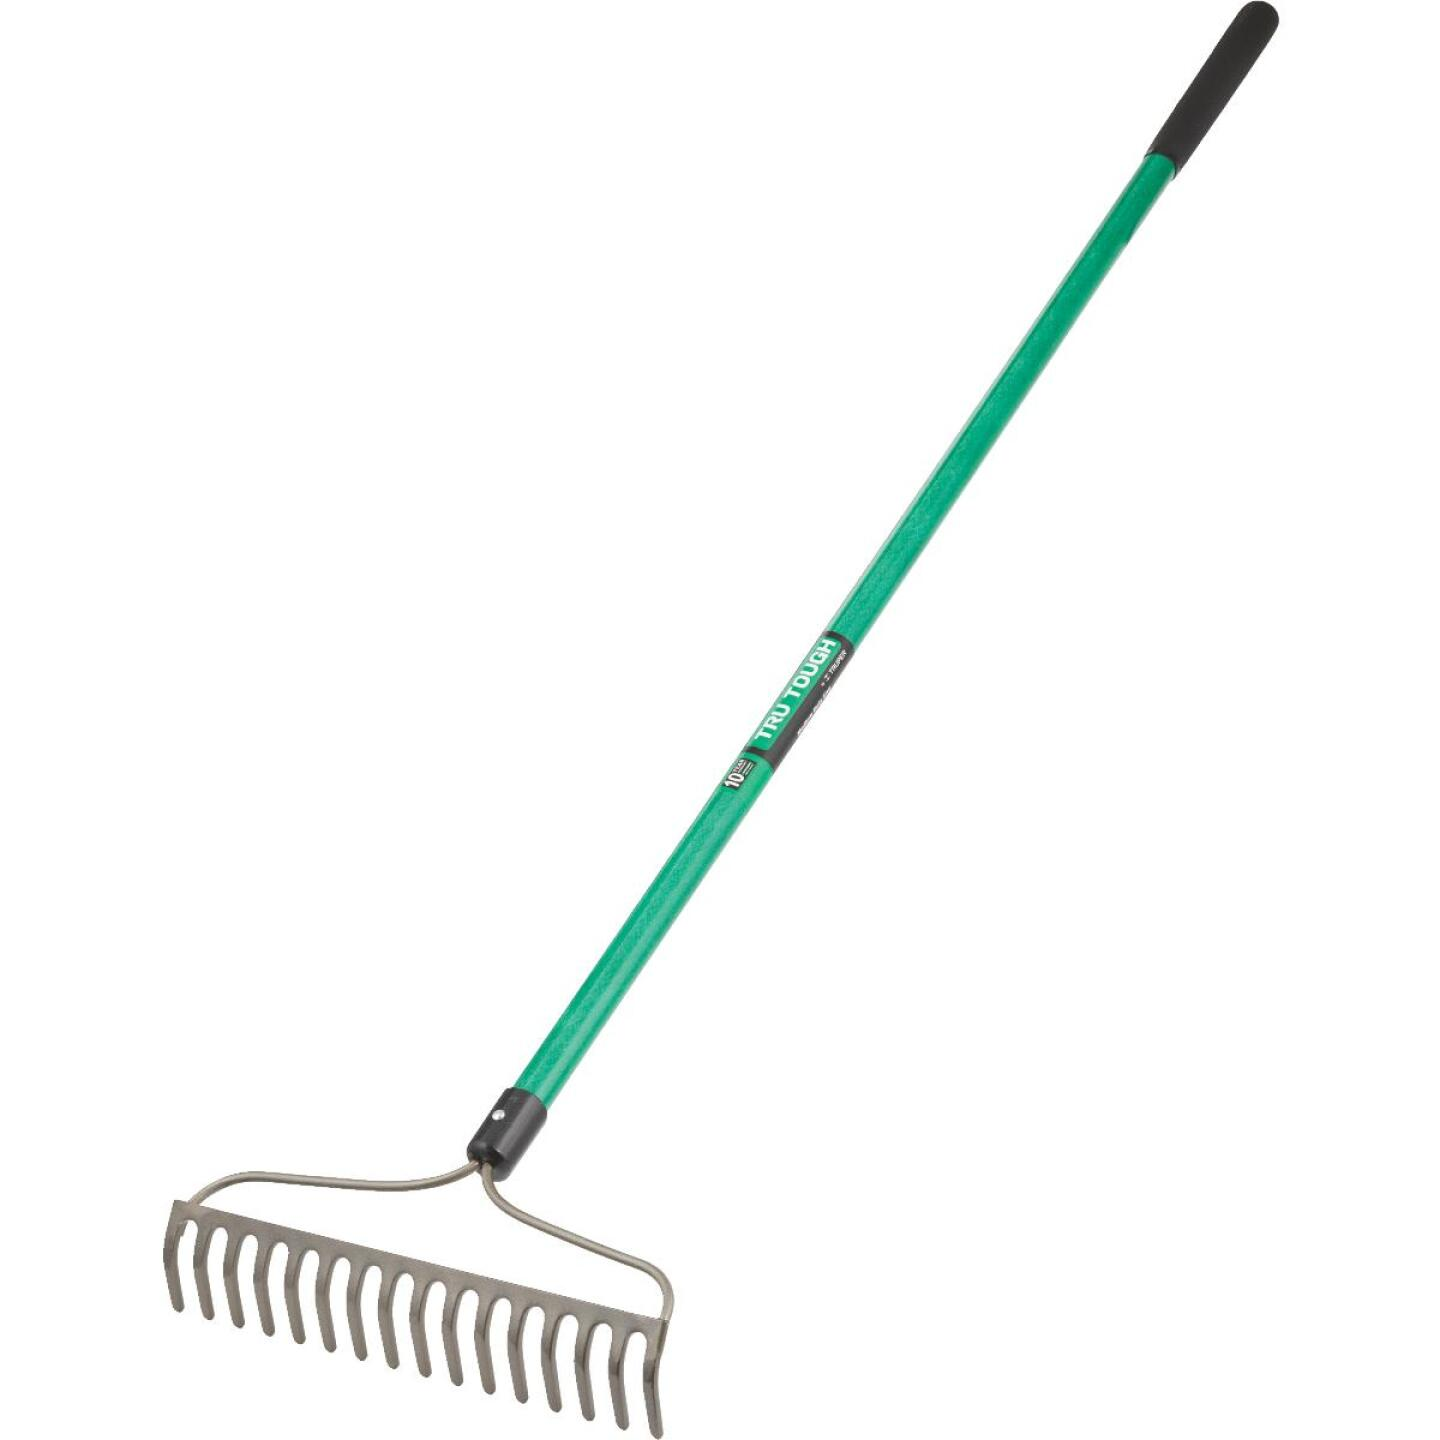 Tru Tough 15.5 In. Steel Bow Garden Rake (16-Tine) Image 2